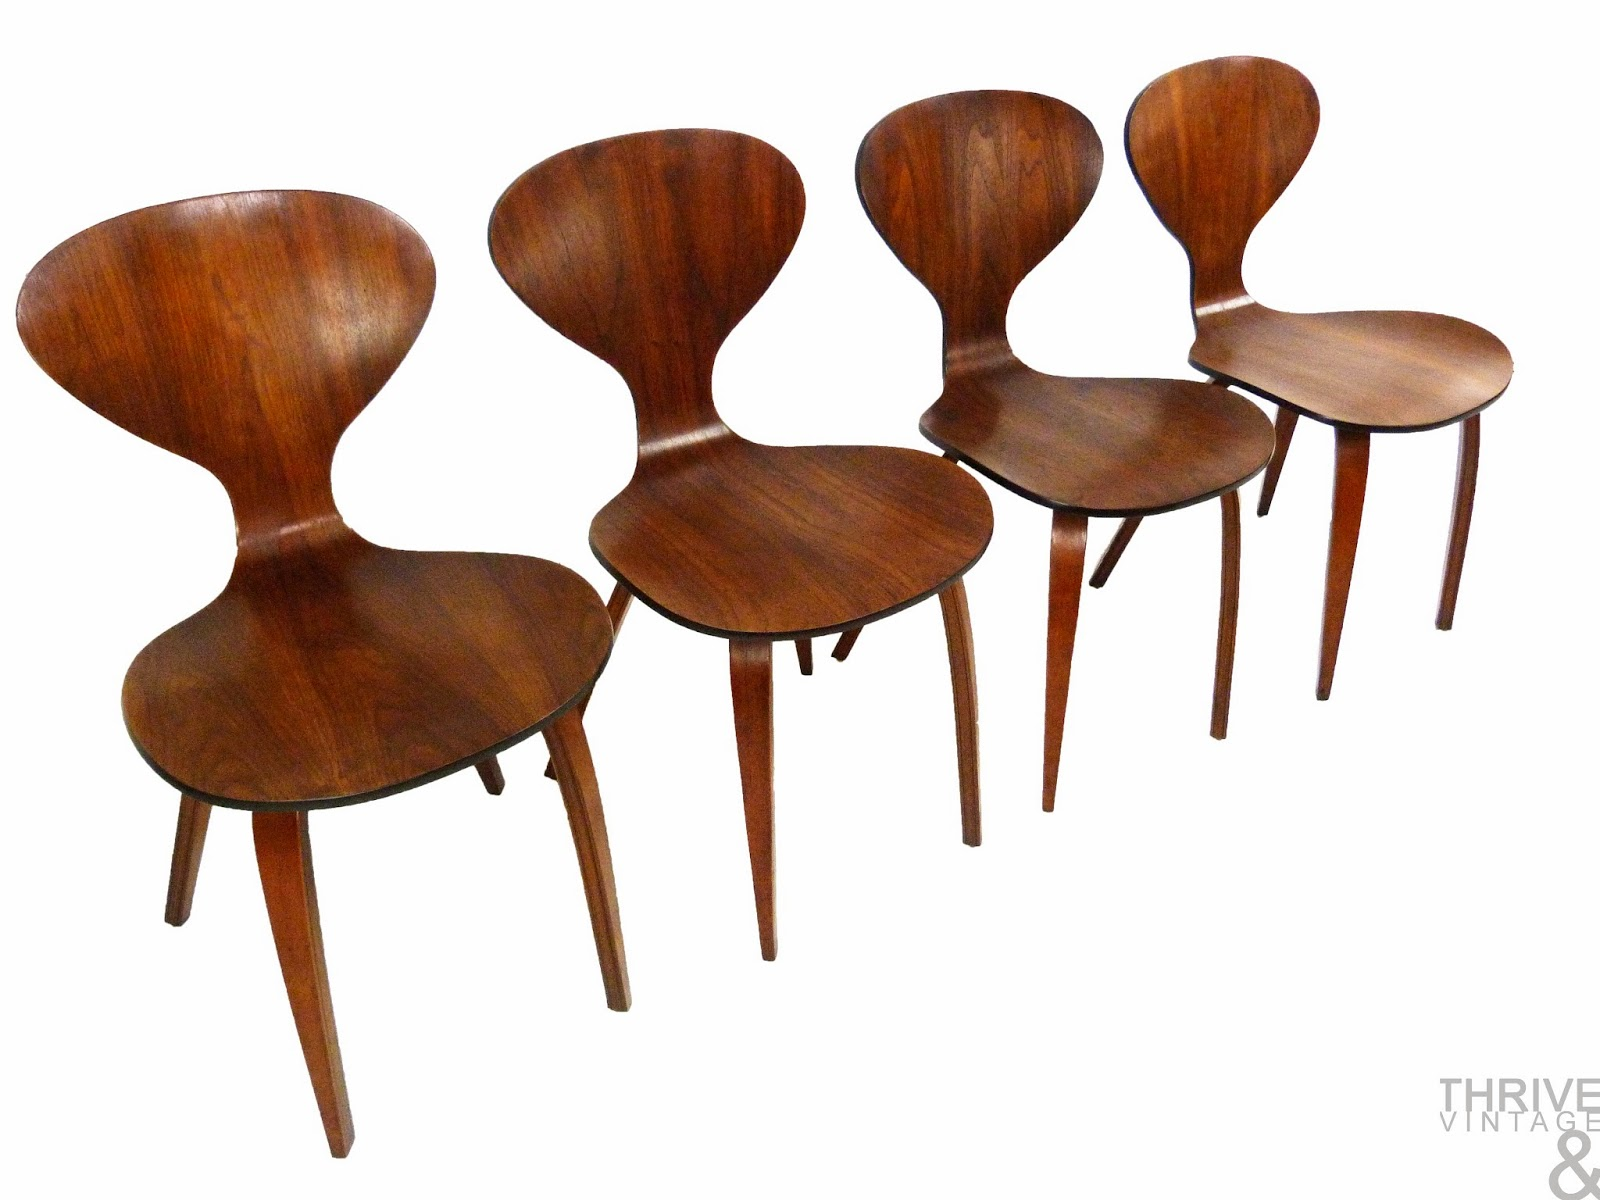 Set of four mid century modern cherner bentwood dining chairs